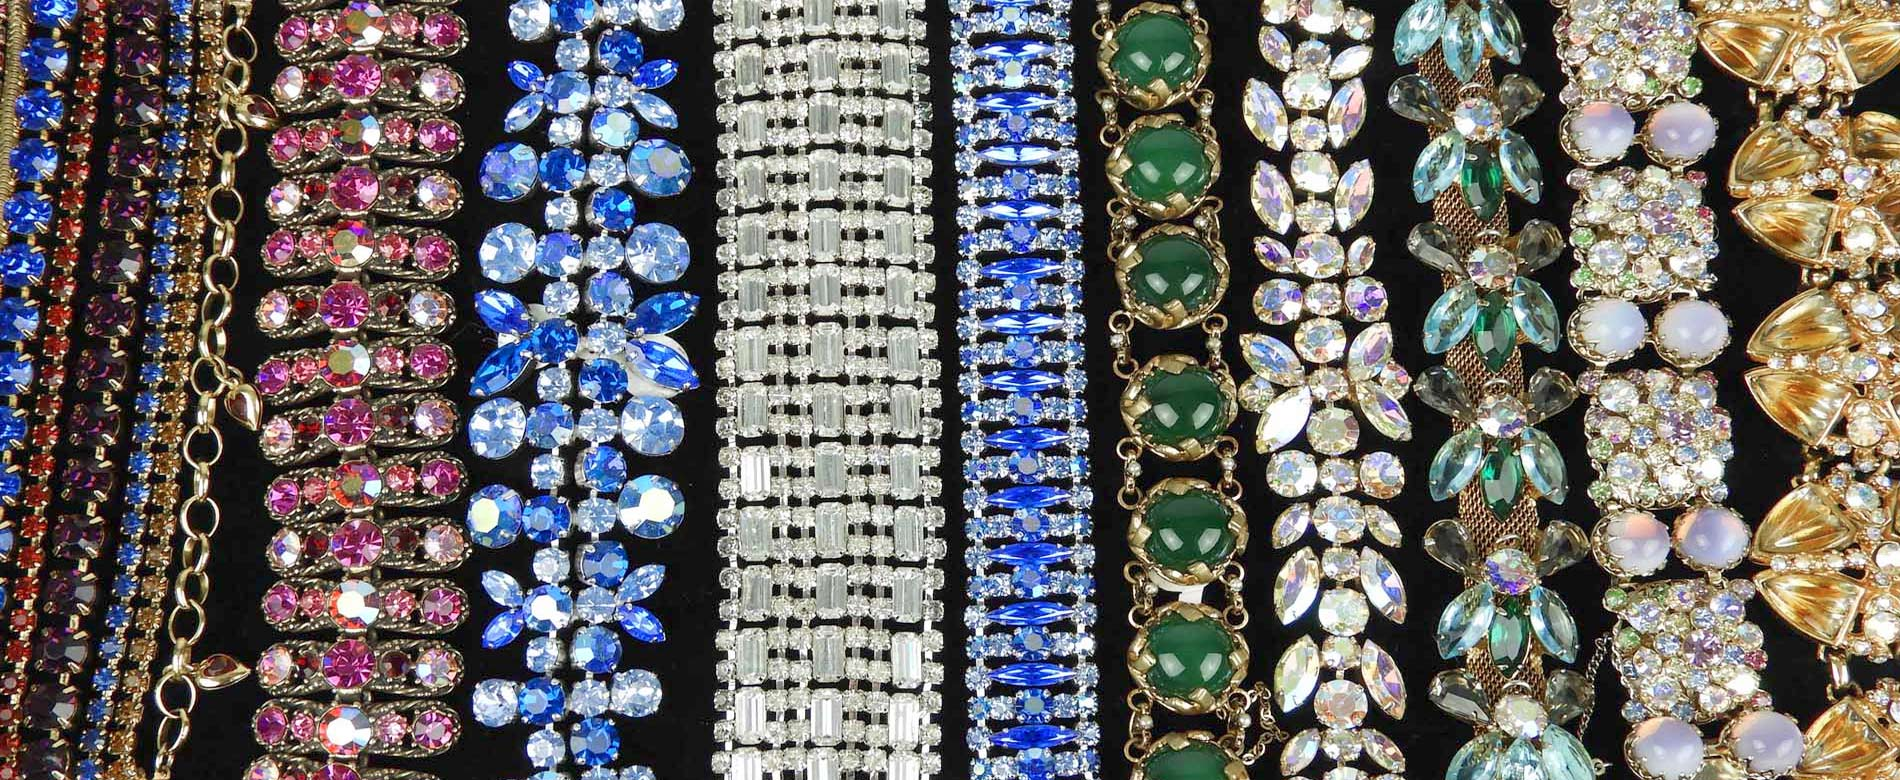 Bring Grandma's costume jewelry and be amazed by its value.